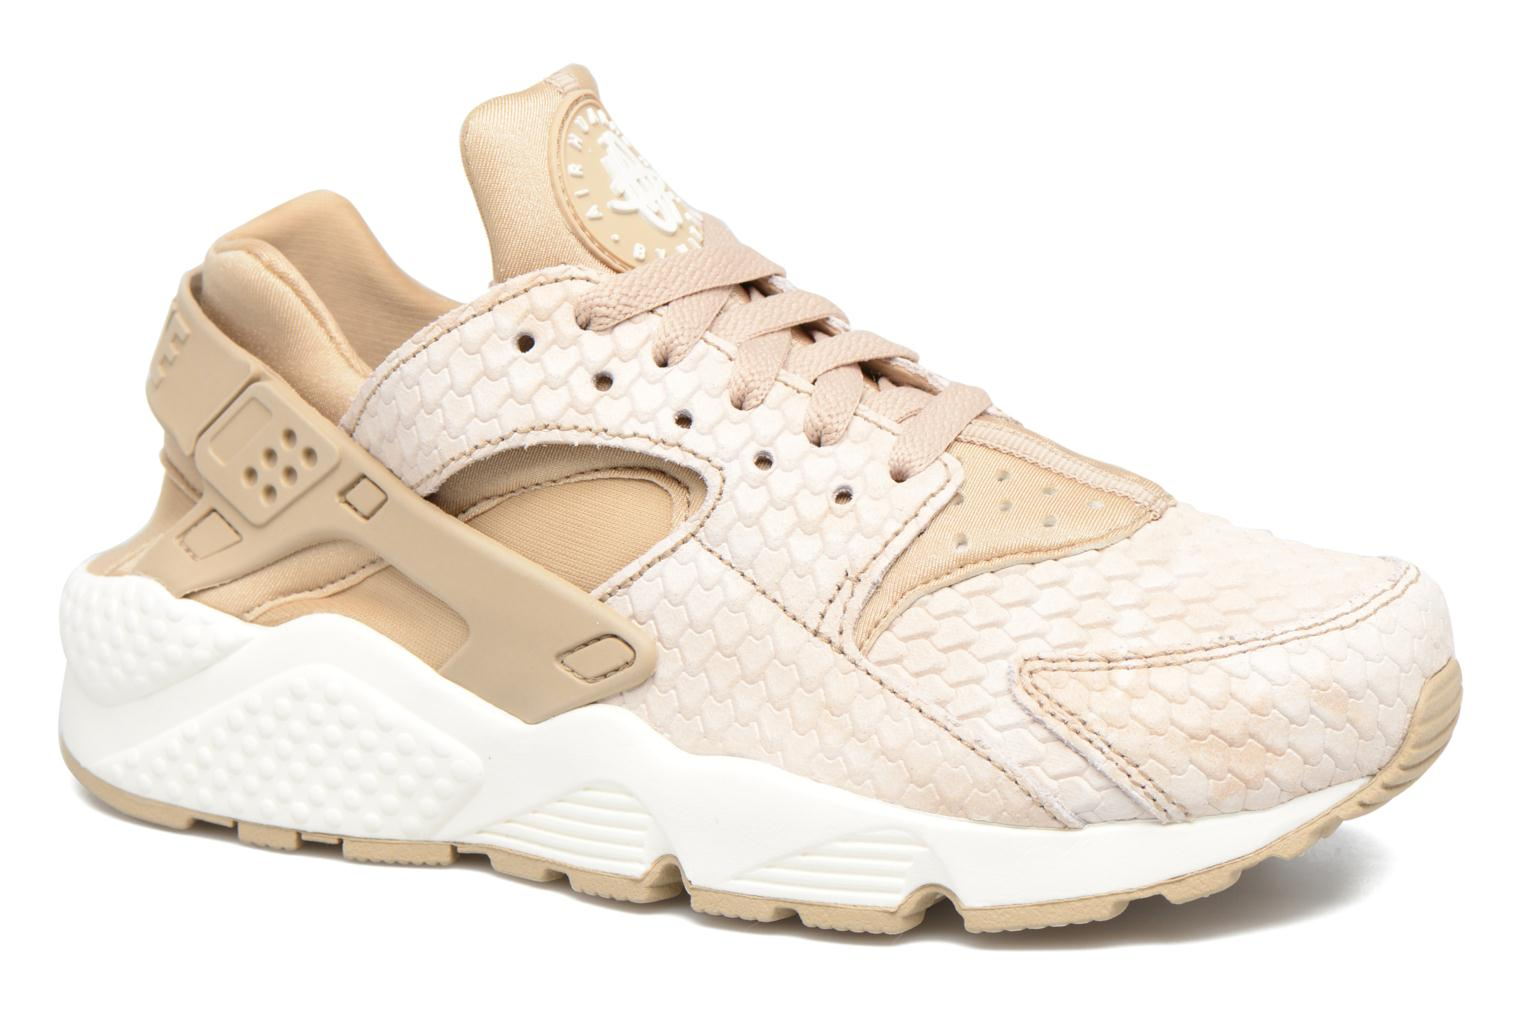 Wmns Air Huarache Run Prm Linen/Linen-Sail